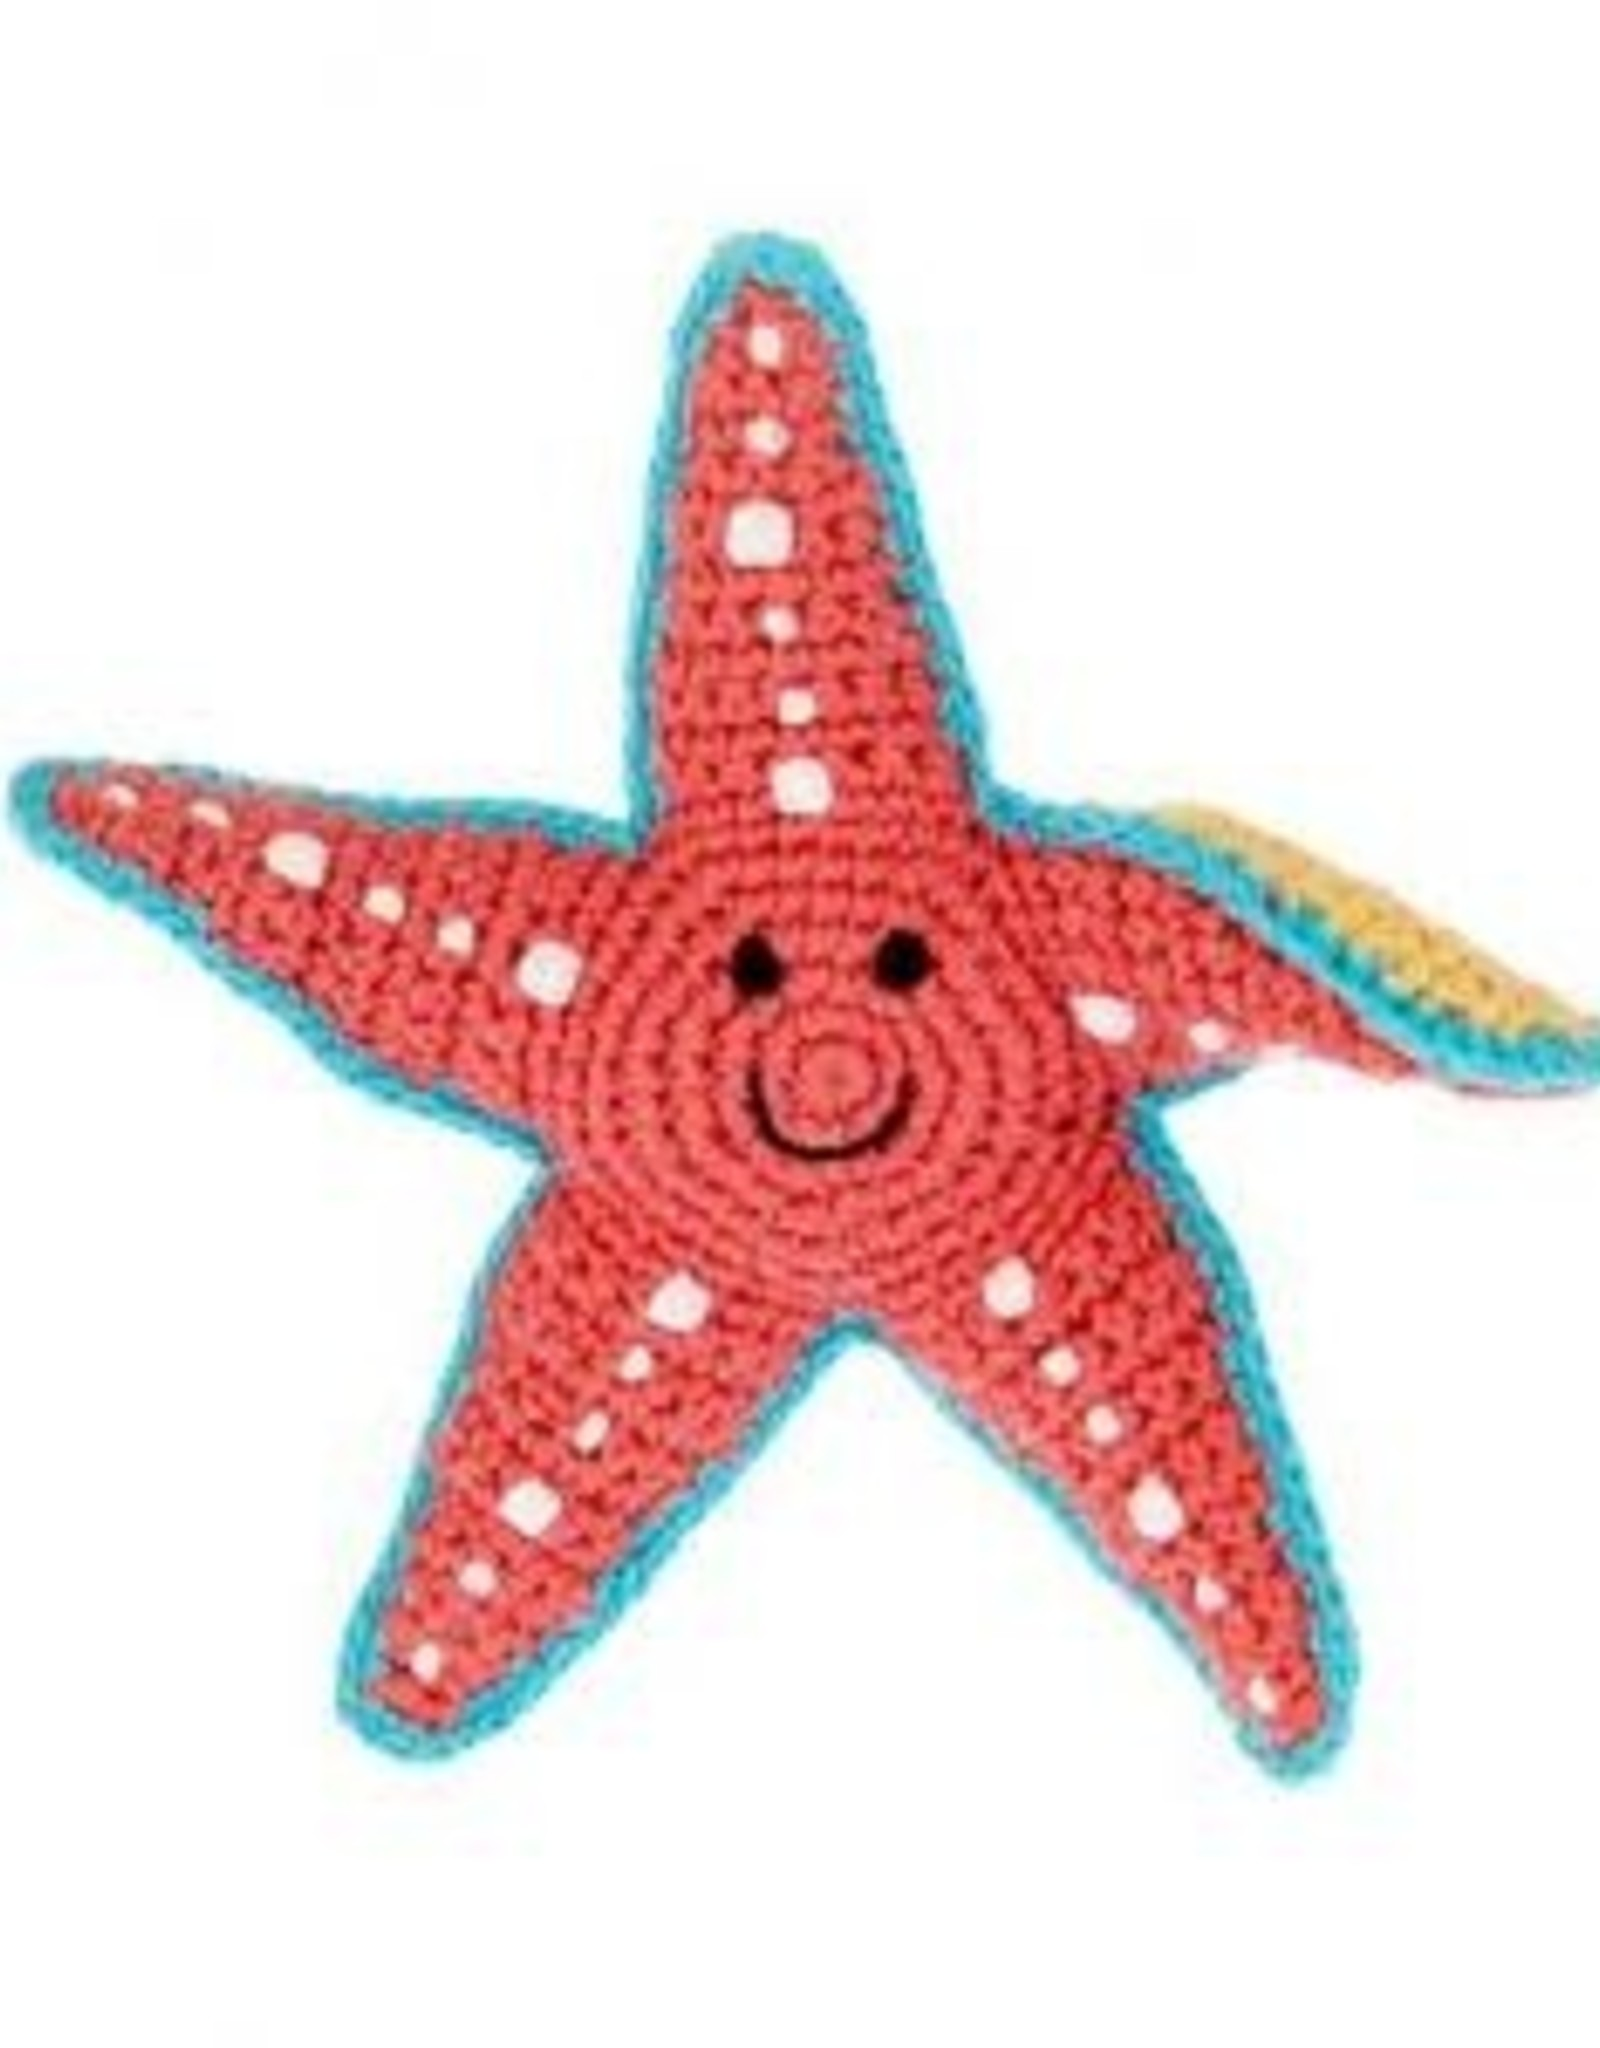 Bangladesh, Crocheted Starfish Rattles